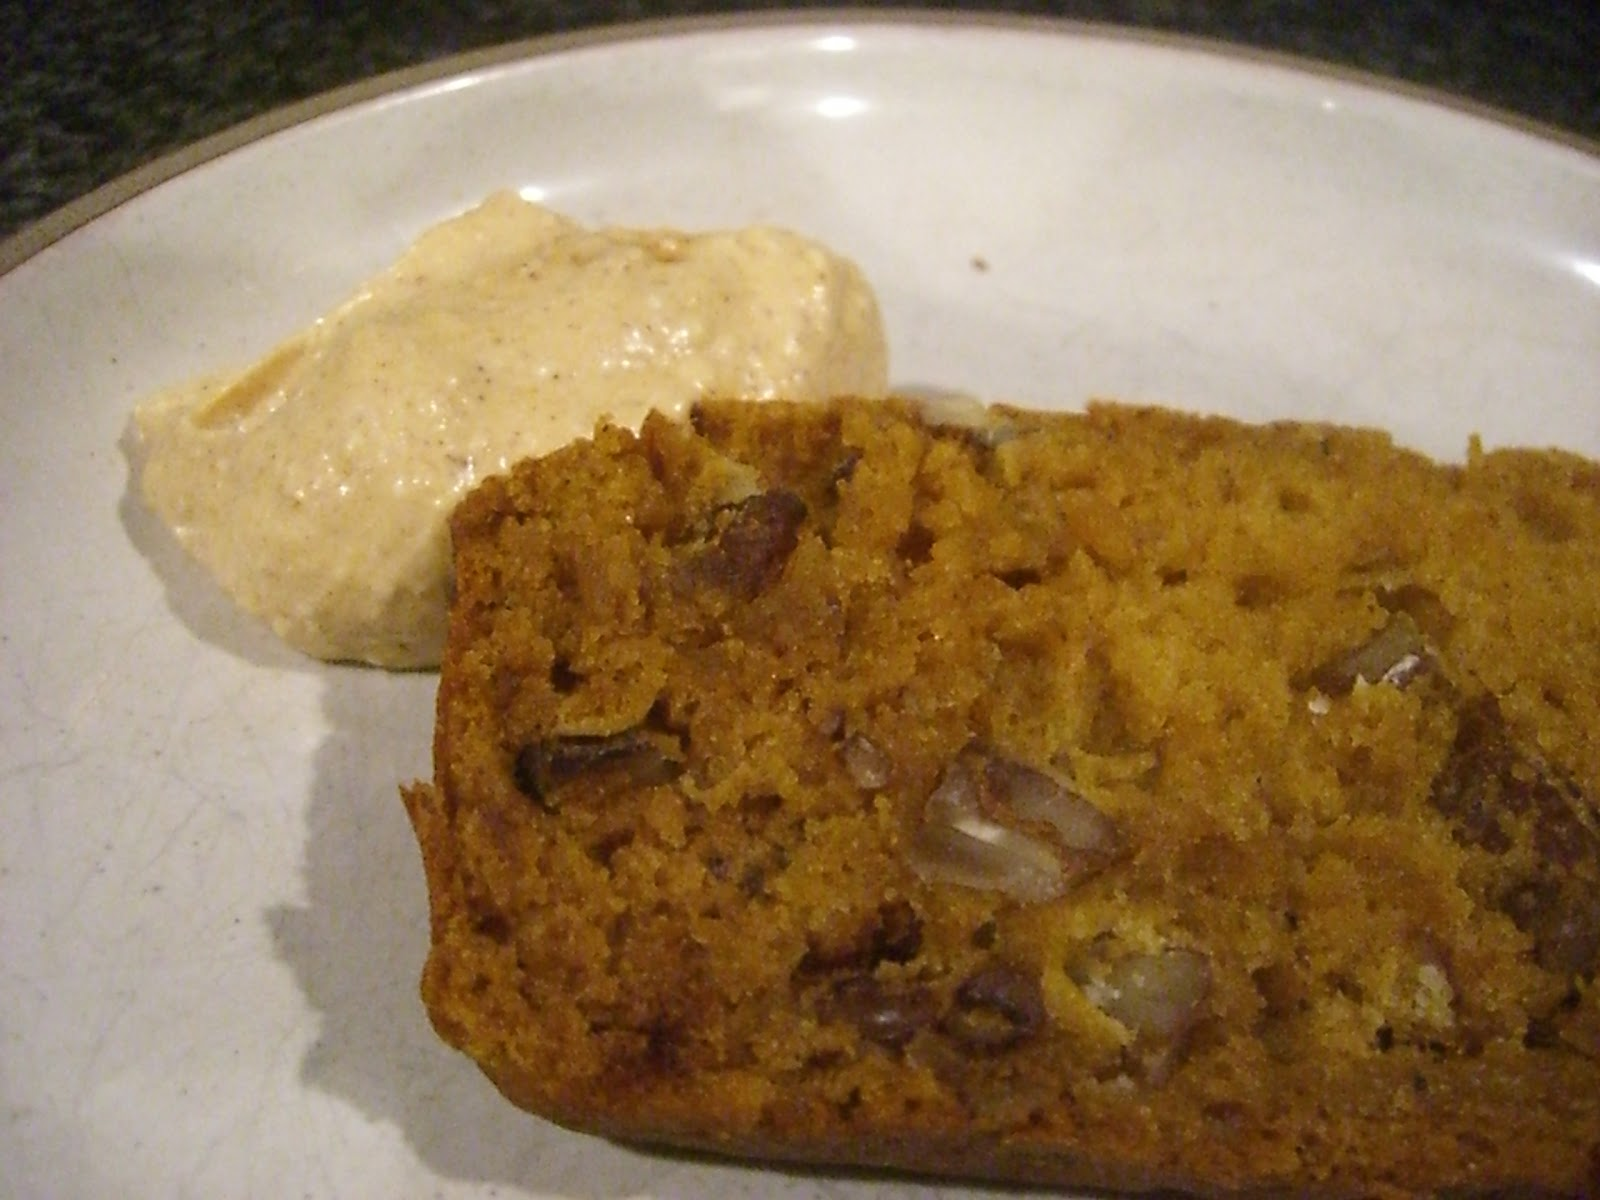 ... Sugar & Spice~ : Pumpkin Pecan Bread with Pumpkin Cream Cheese Spread